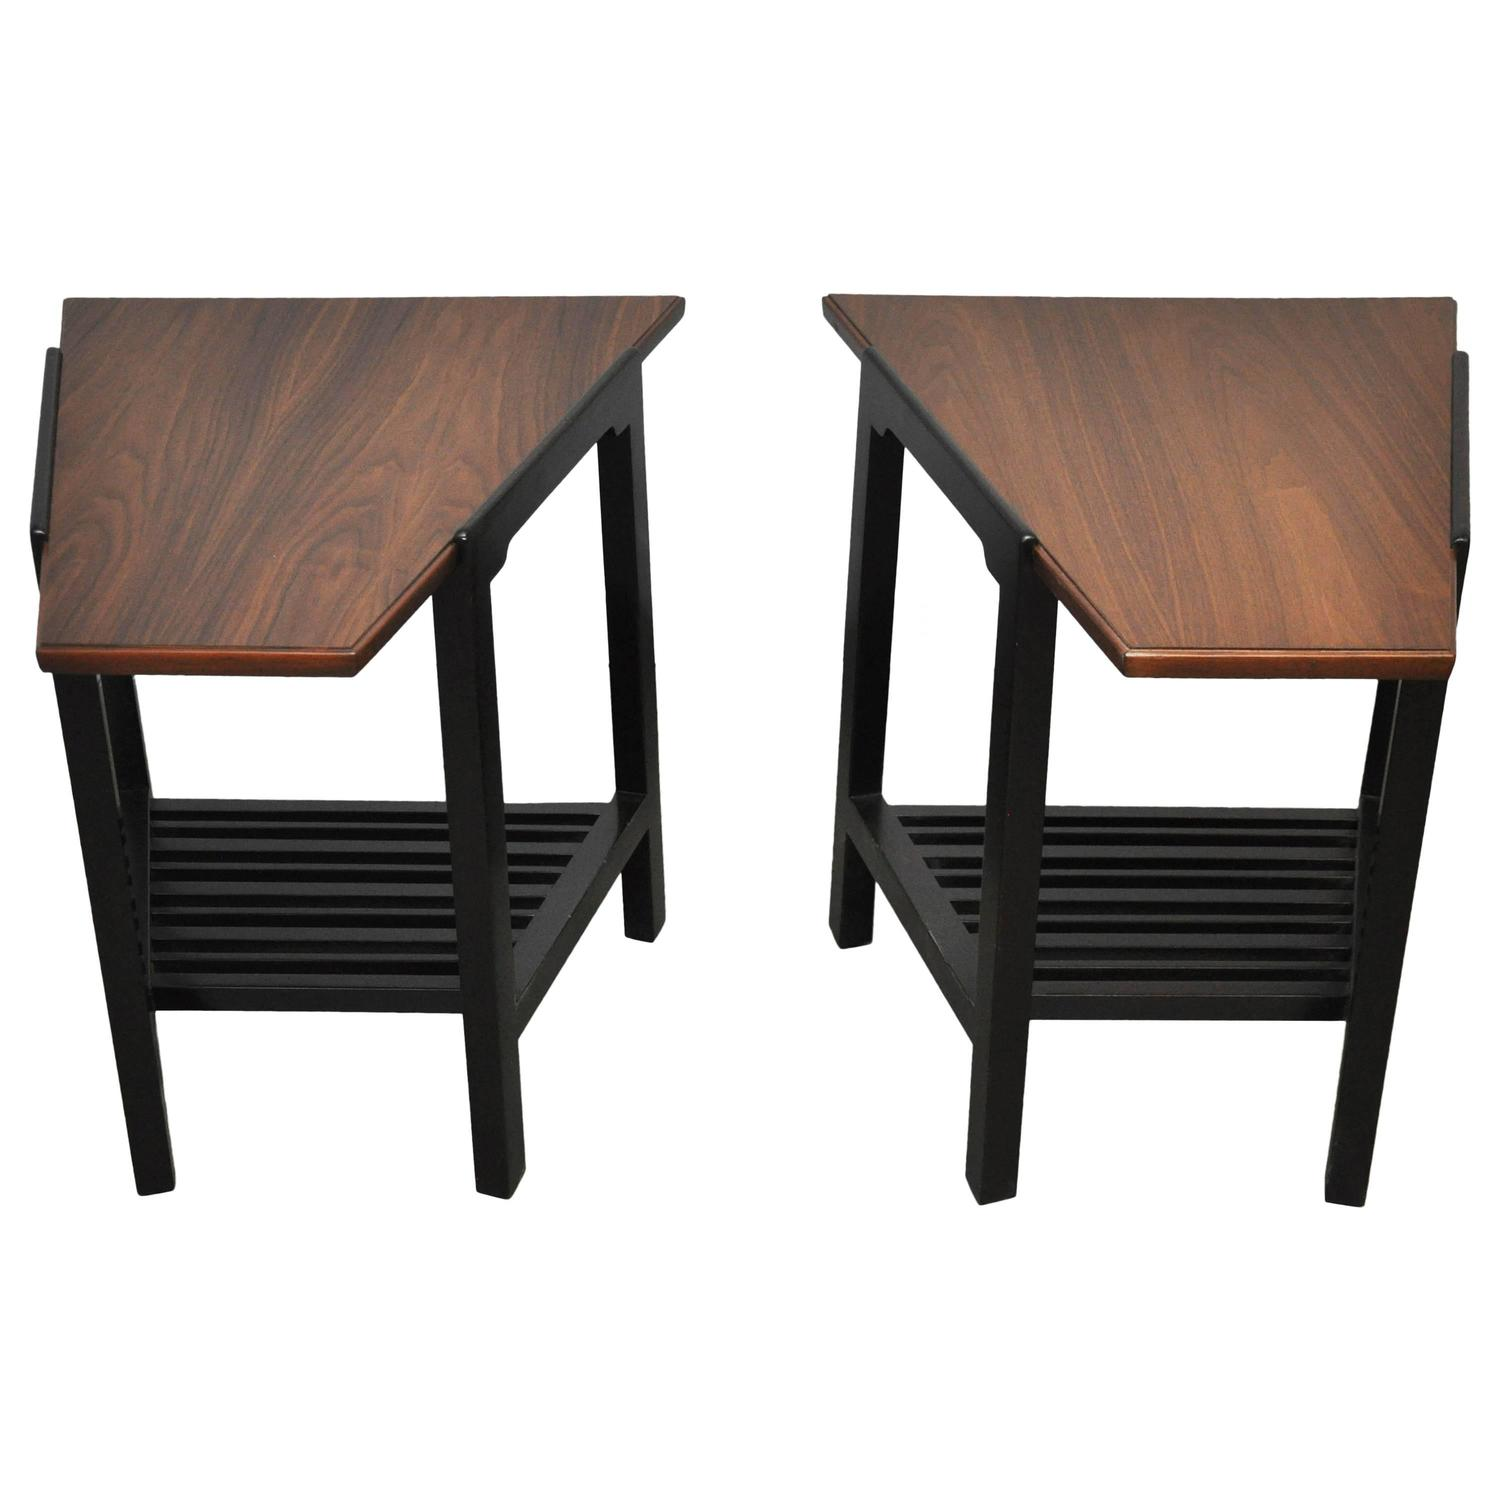 Dunbar Wedge Side Tables by Edward Wormley For Sale at 1stdibs